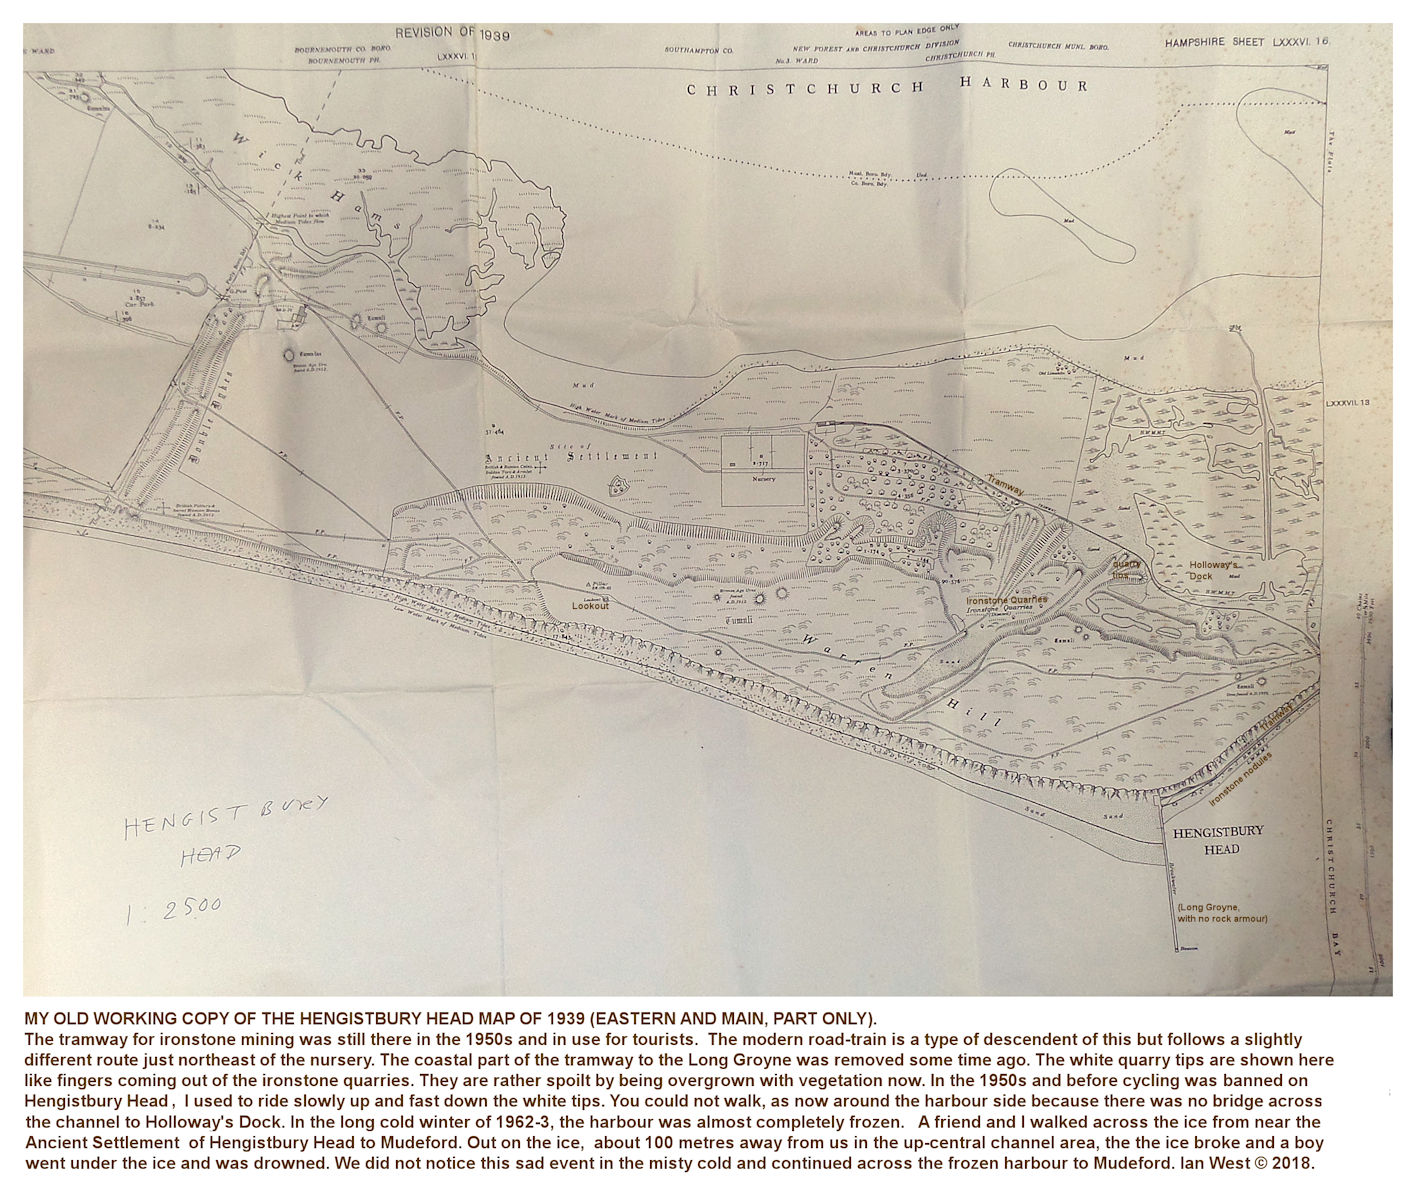 An old, large-scale topographic map of Hengistbury Head, showing details of the ironstone quarry tips